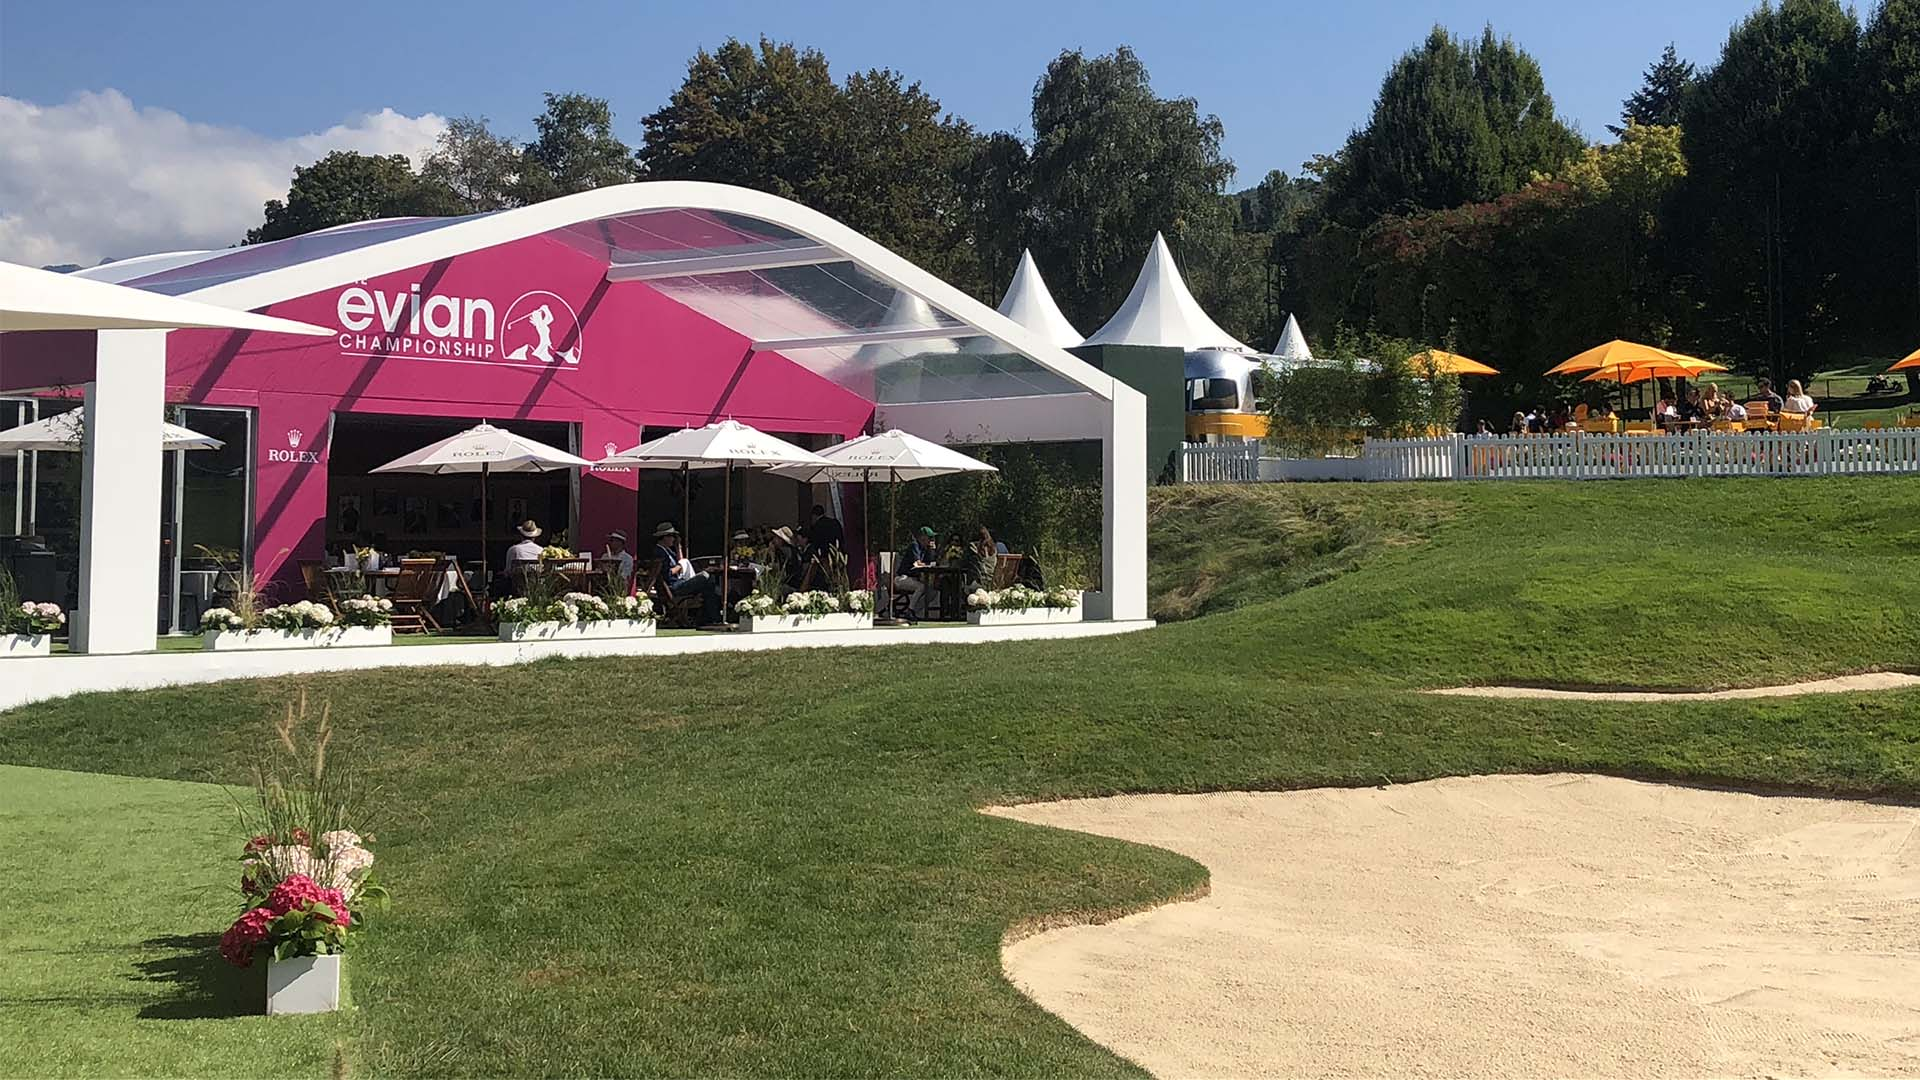 VOGO at The Evian Championship 2019